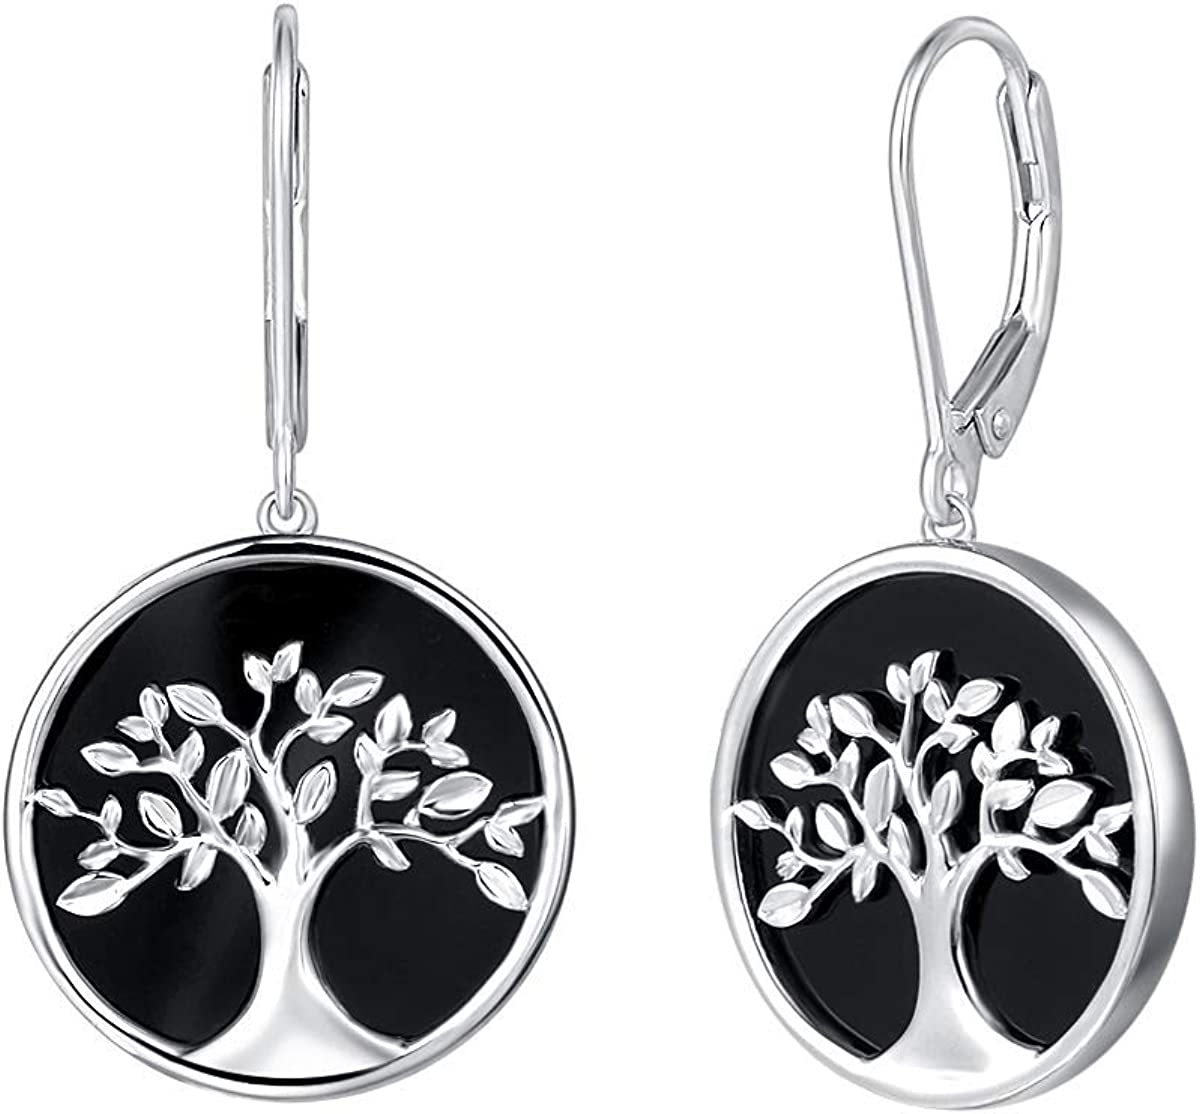 Agvana Tree of Life Necklace Boston Mall Sterling Silver Na Earrings Wholesale Genuine